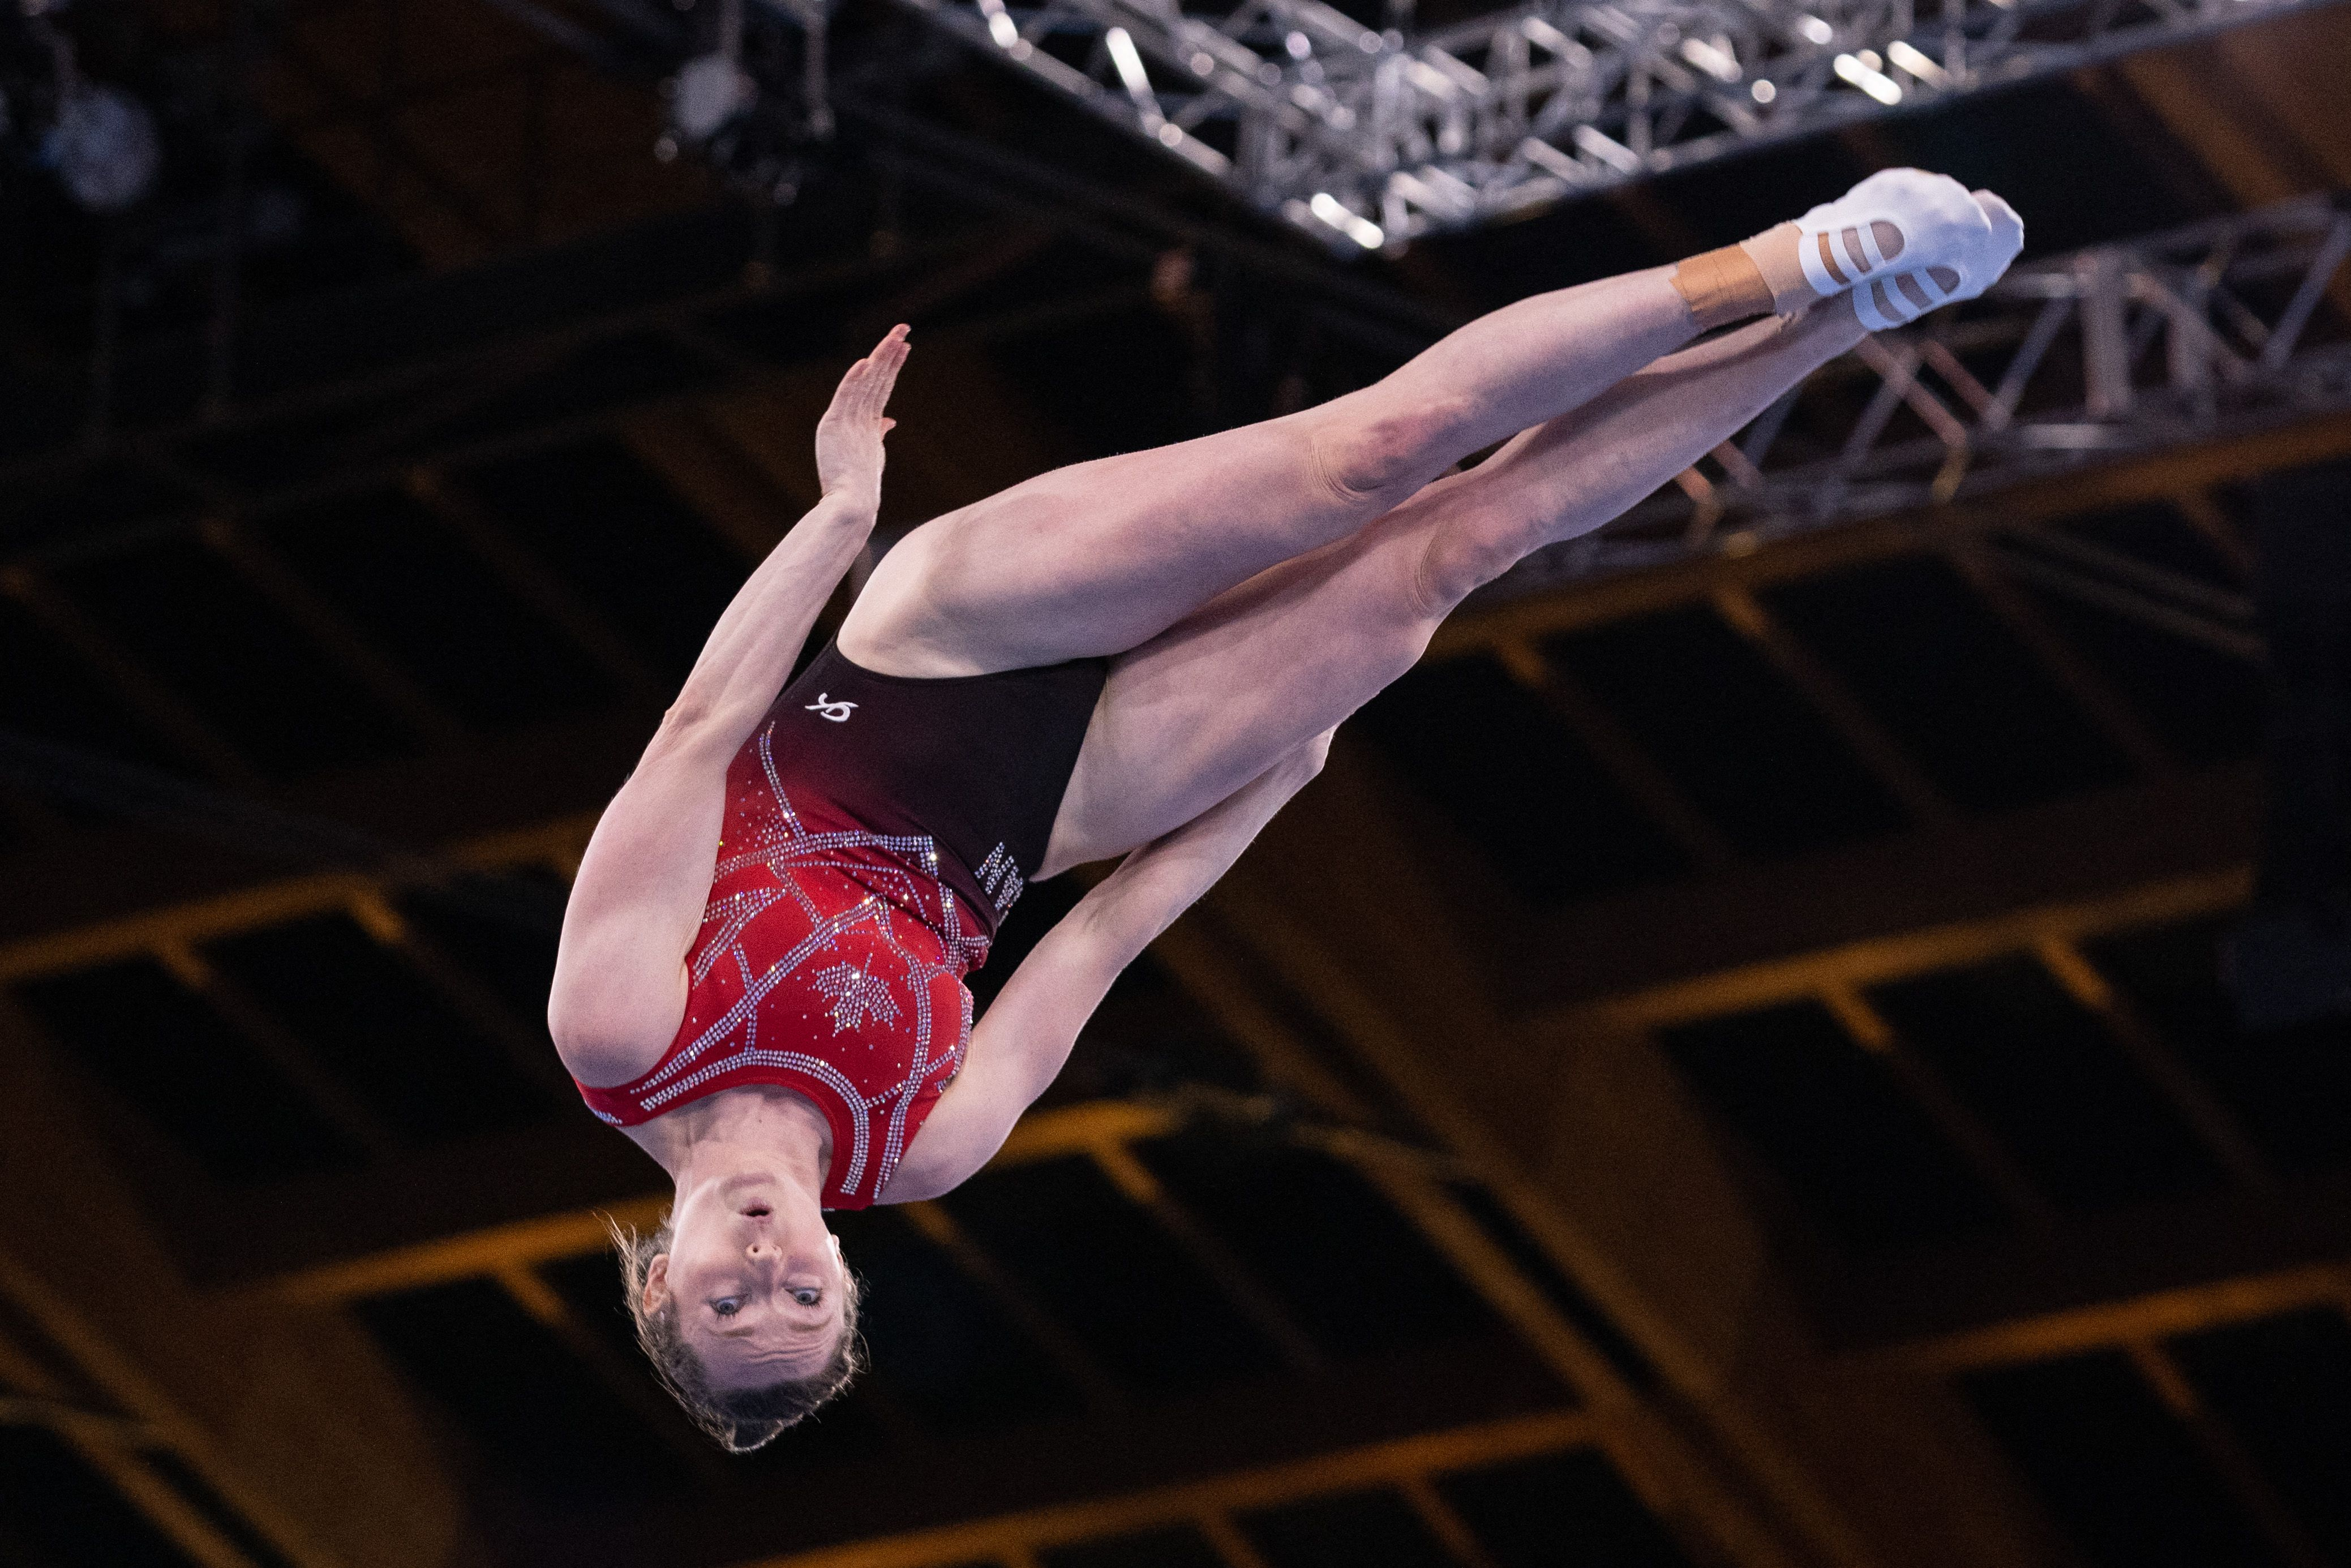 Rosie MacLennan finishes fourth in trampoline at Tokyo Olympics